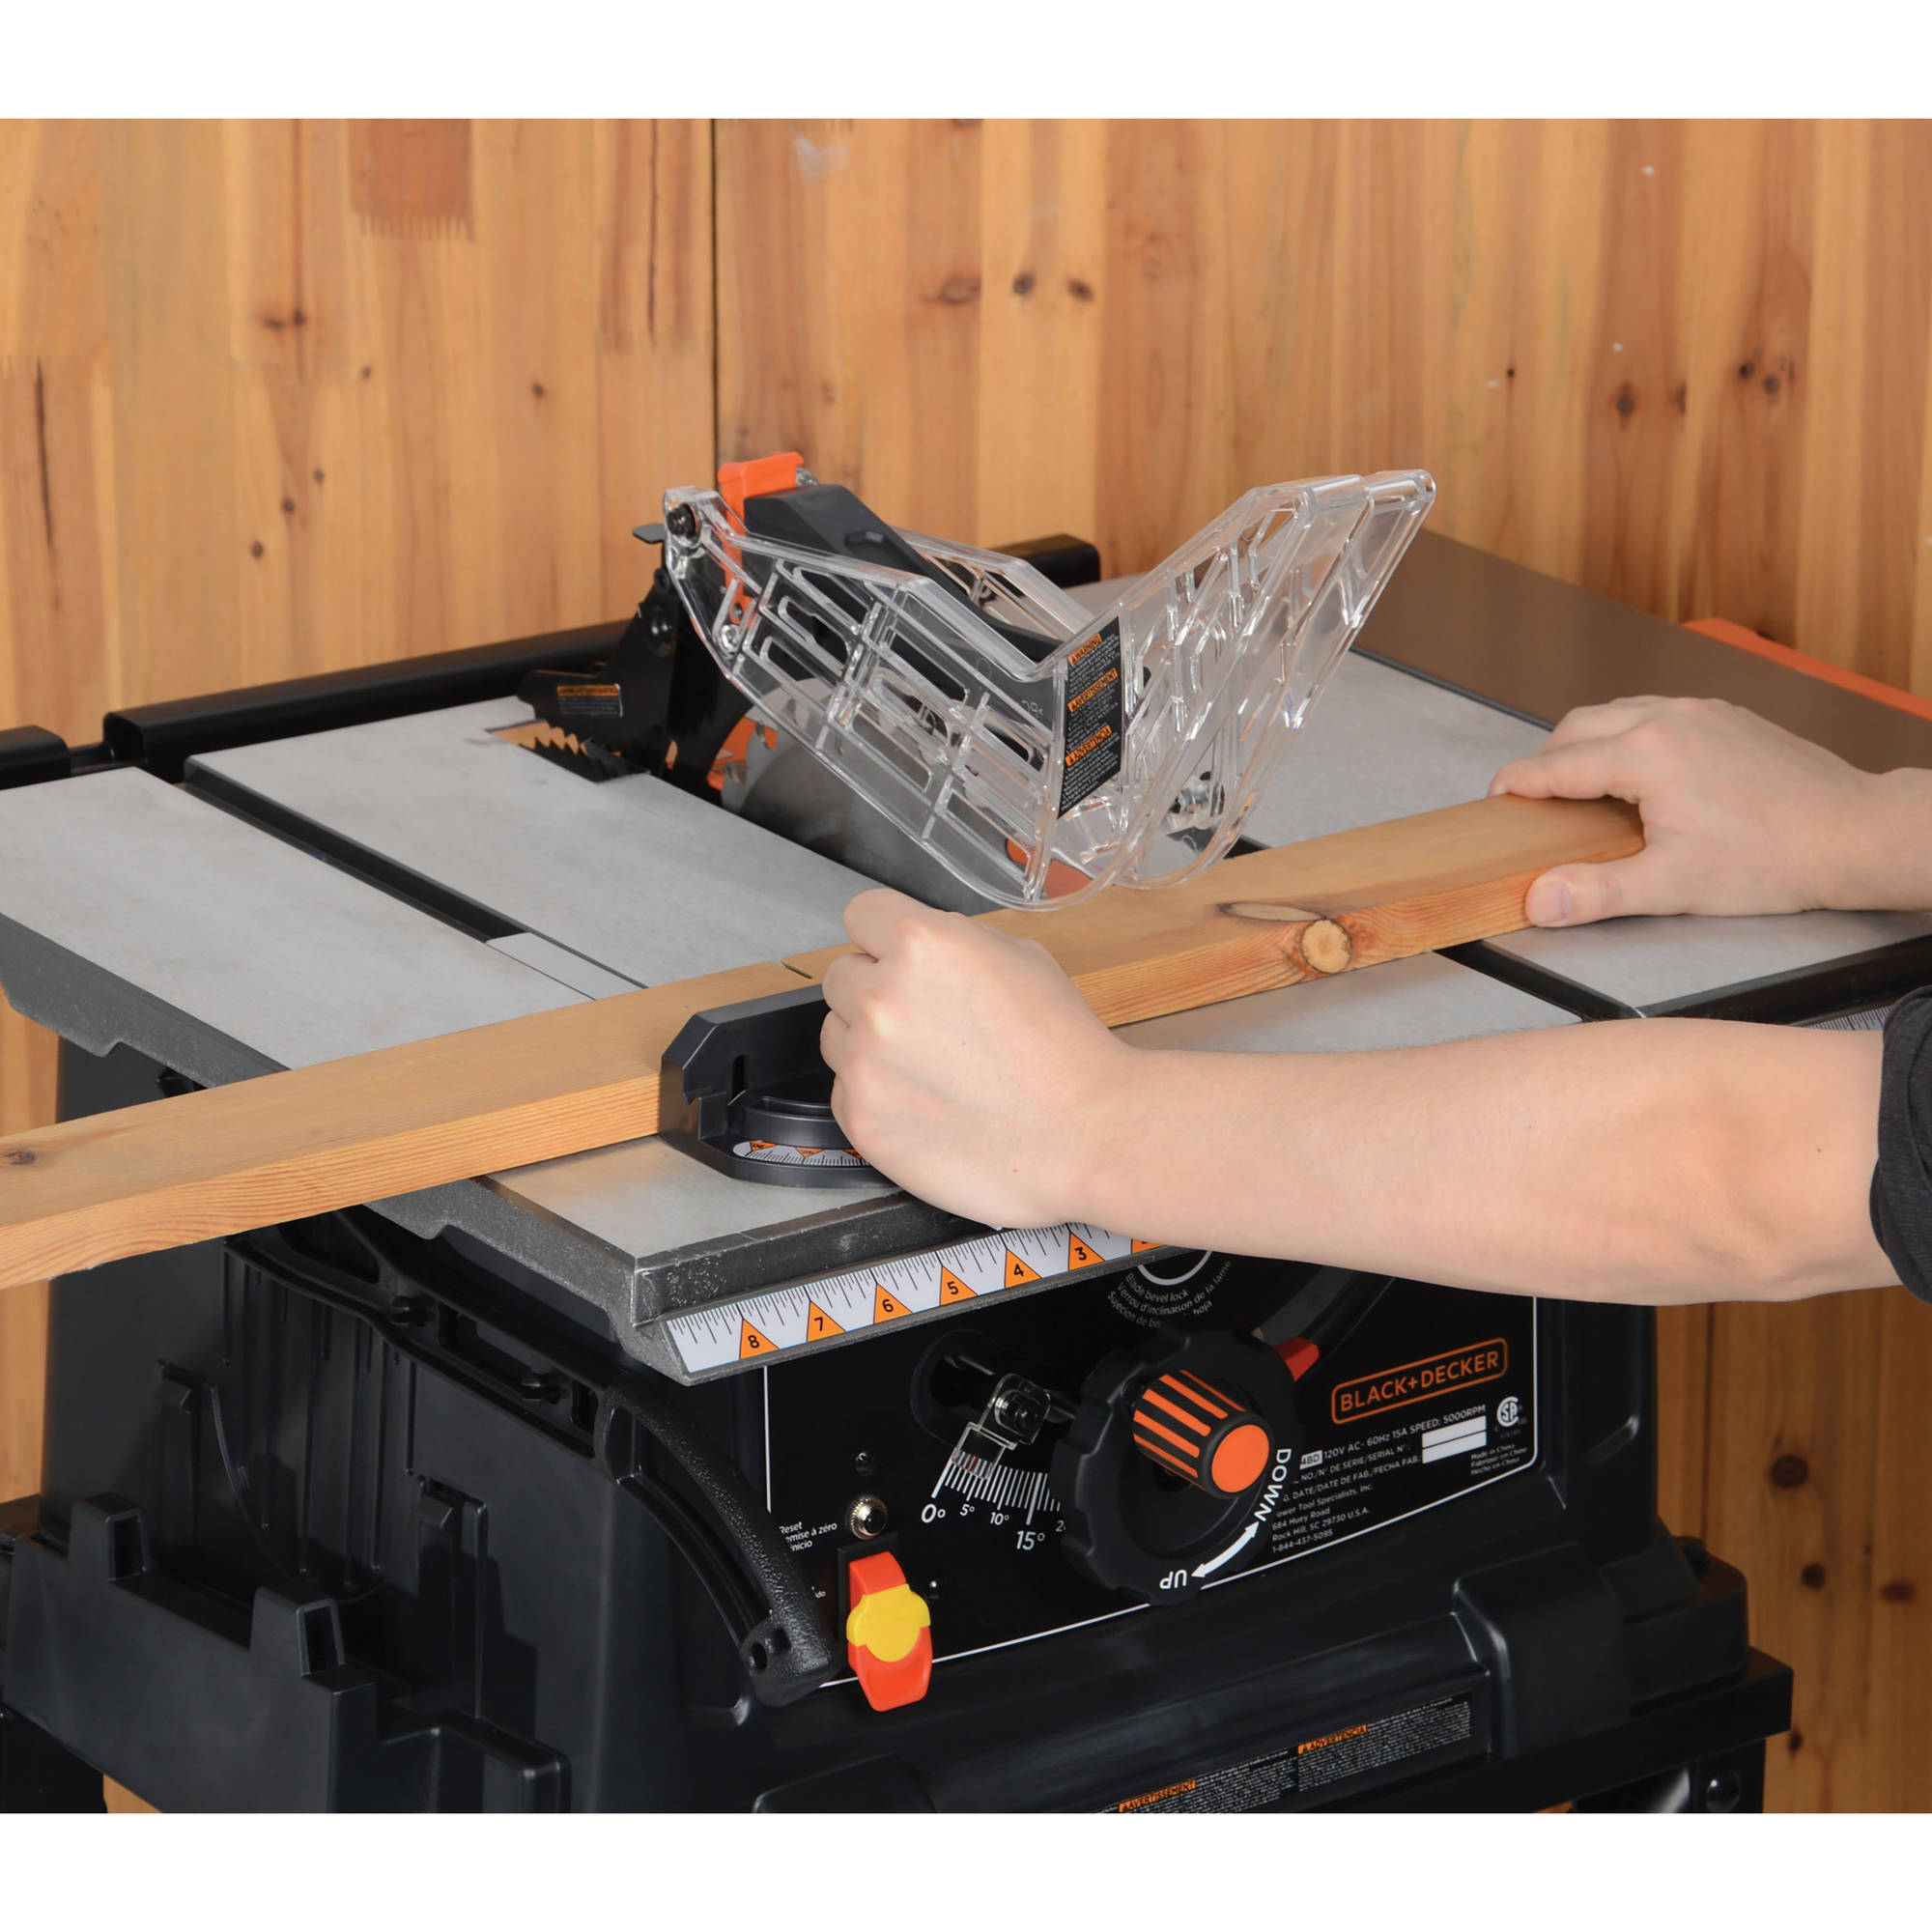 Black and decker 10 portable table saw walmart greentooth Choice Image